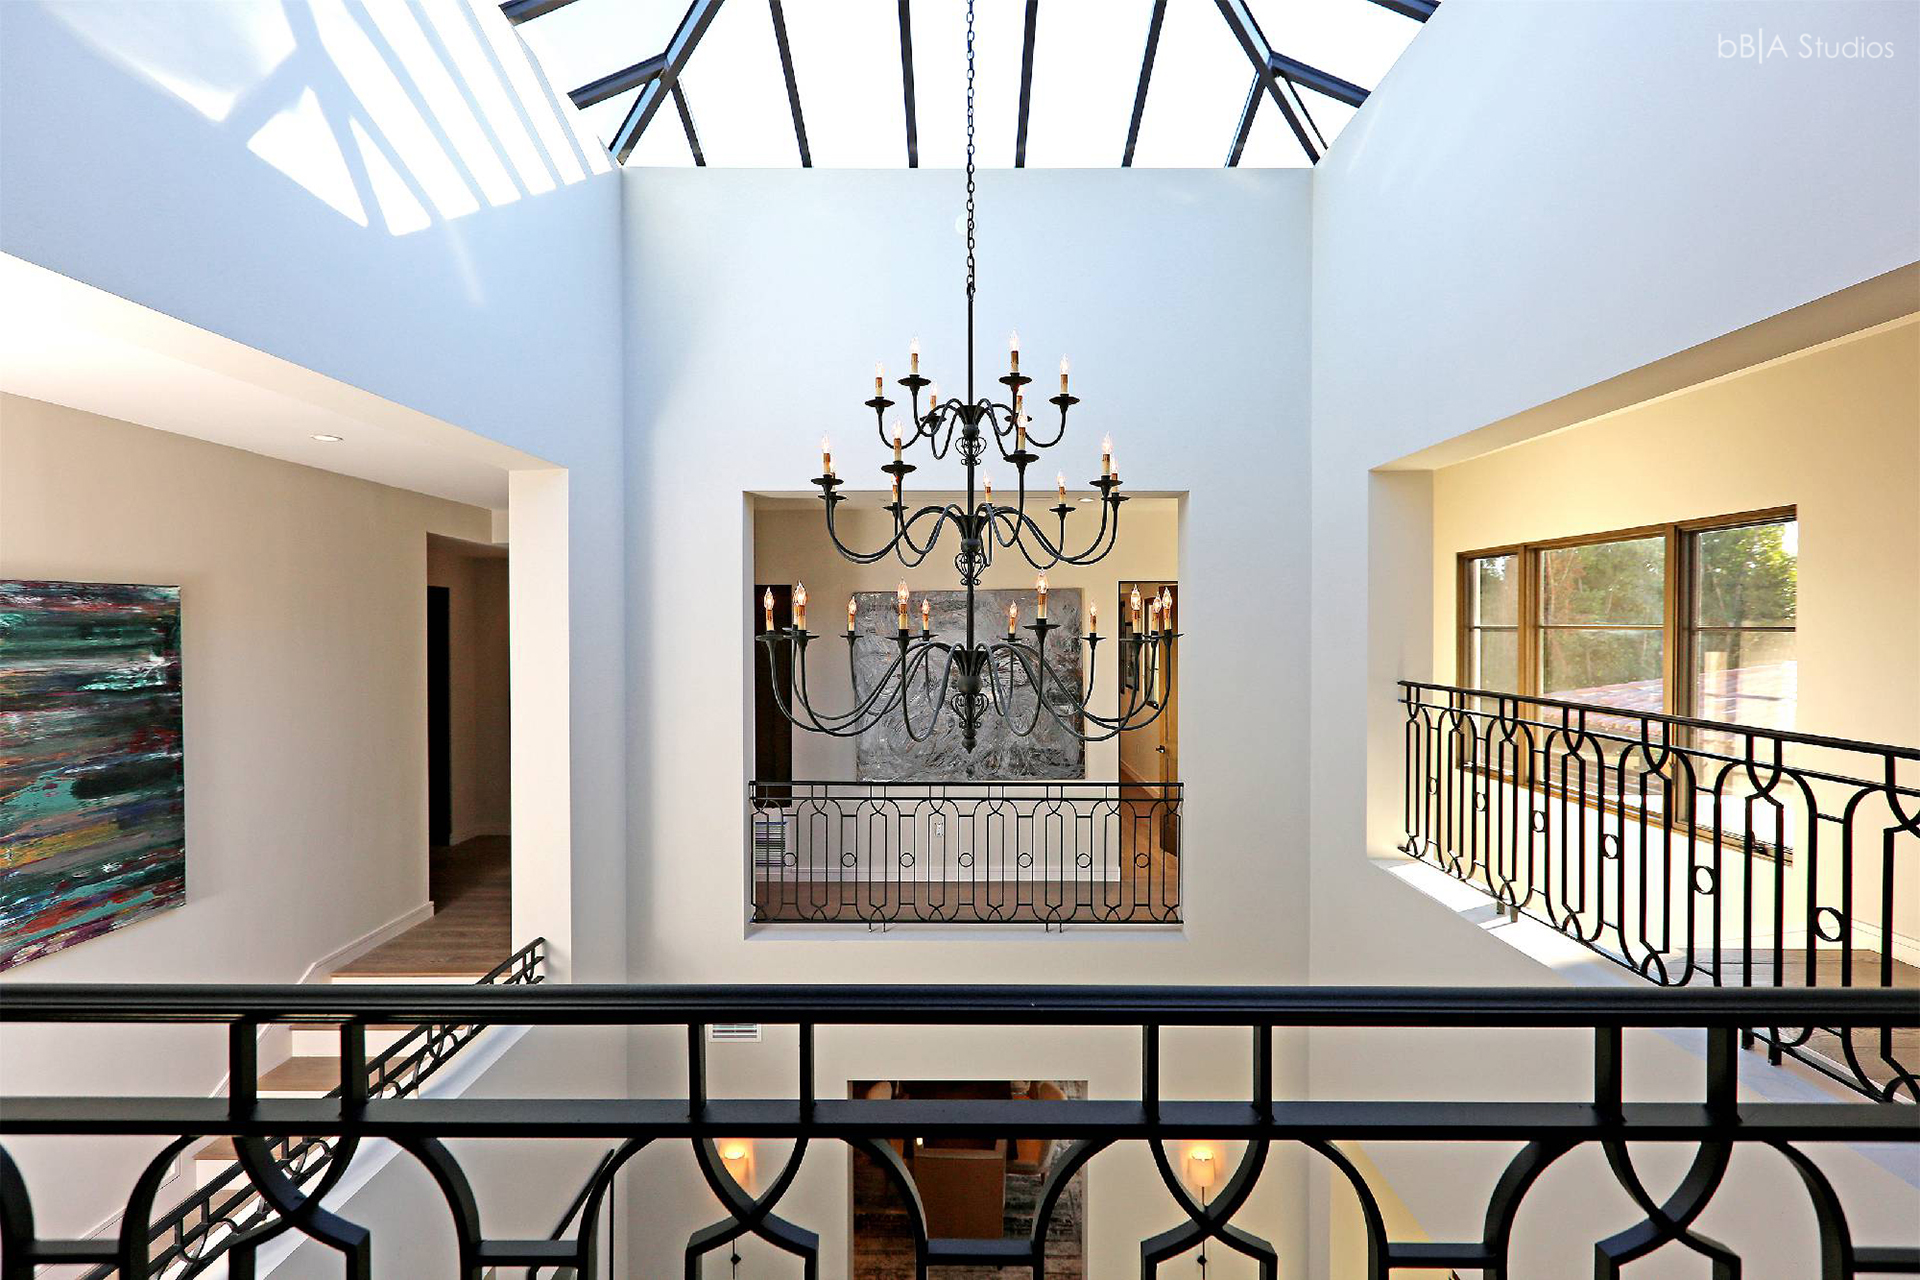 Second floor landing and chandelier